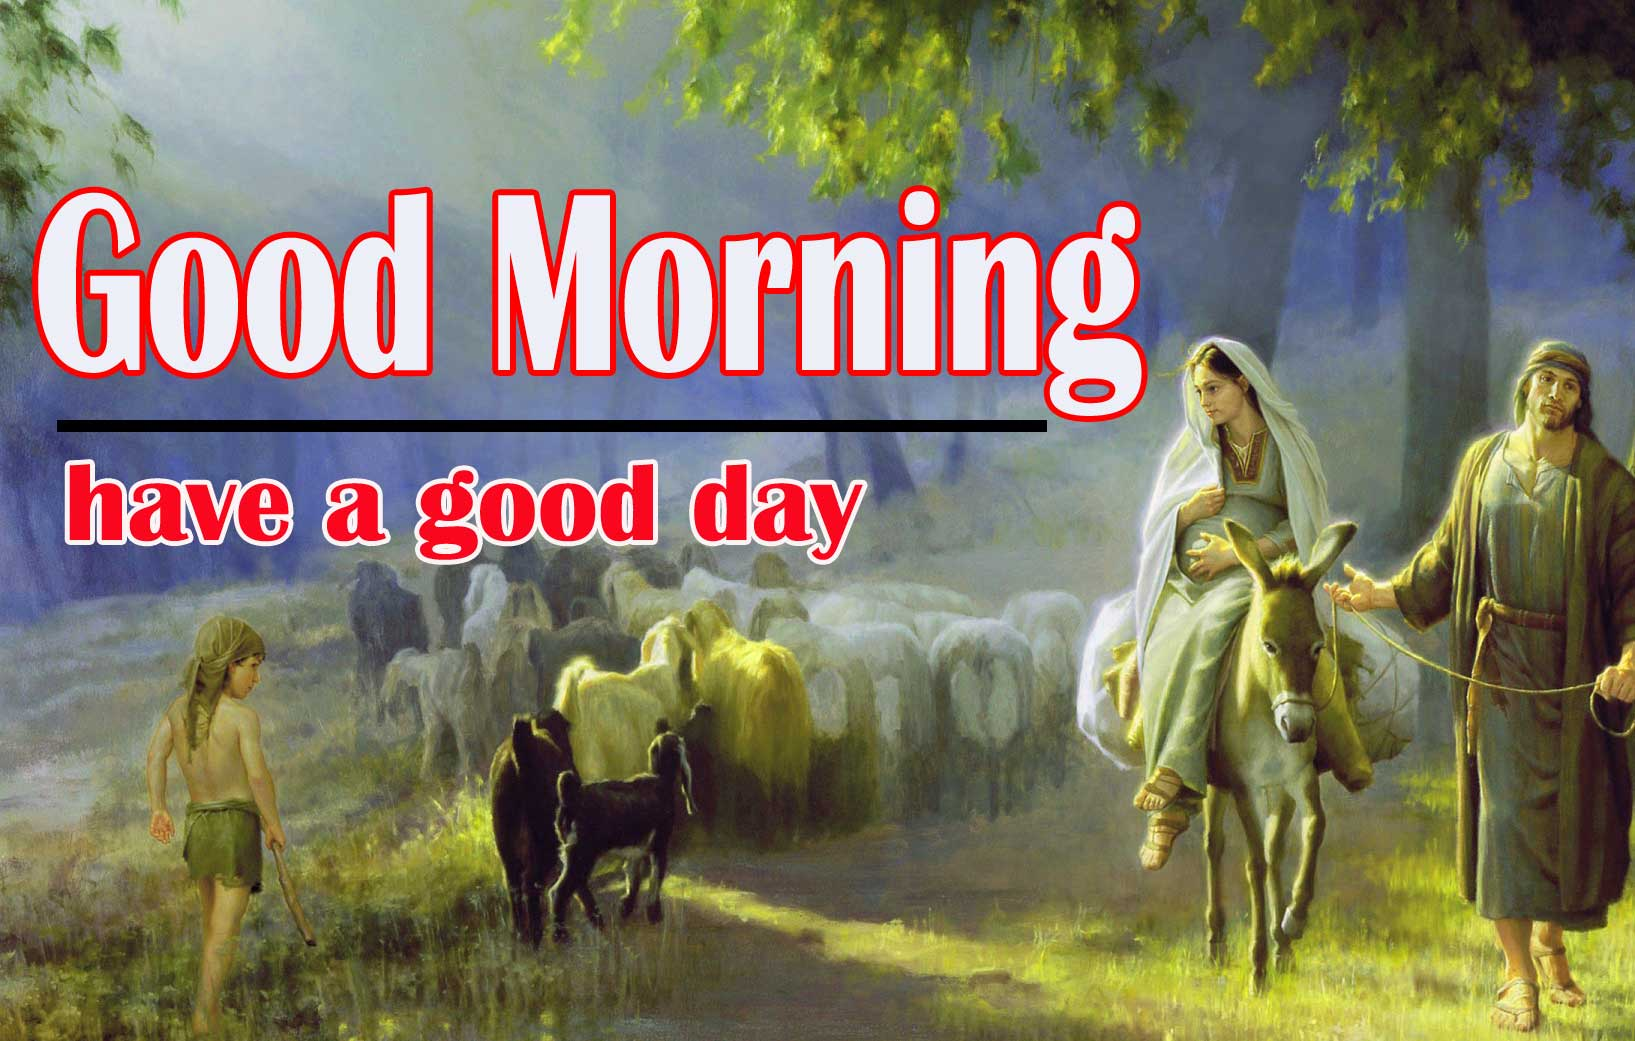 Good Morning Lord Jesus Images for Fb